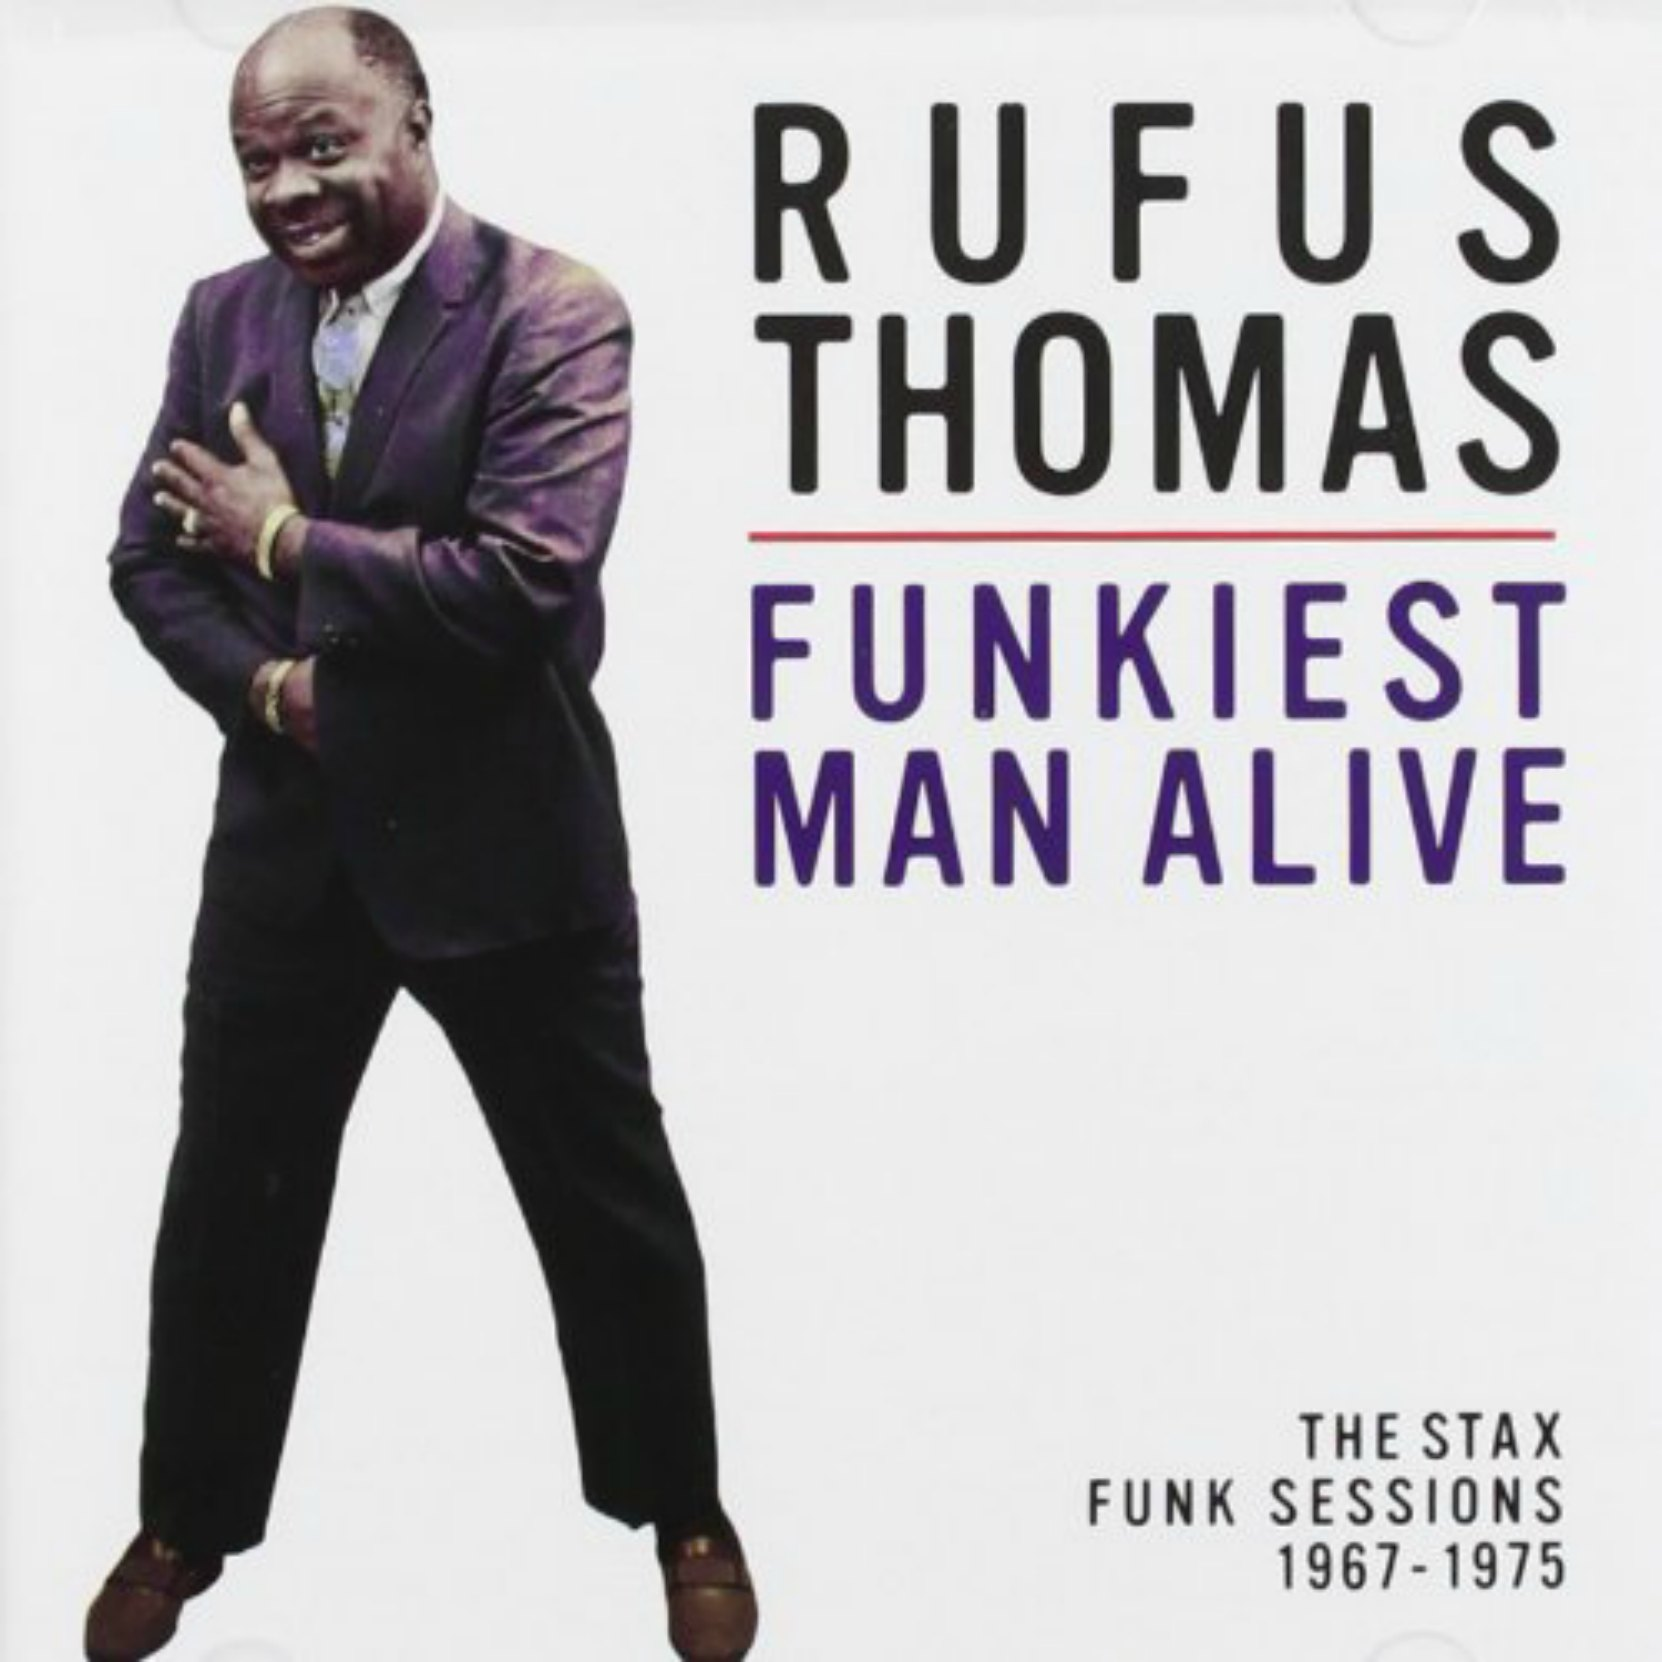 CD cover, Funkiest Man Alive: The Stax Funk Sessions 1967-1975 by Rufus Thomas. On Fantasy Records.